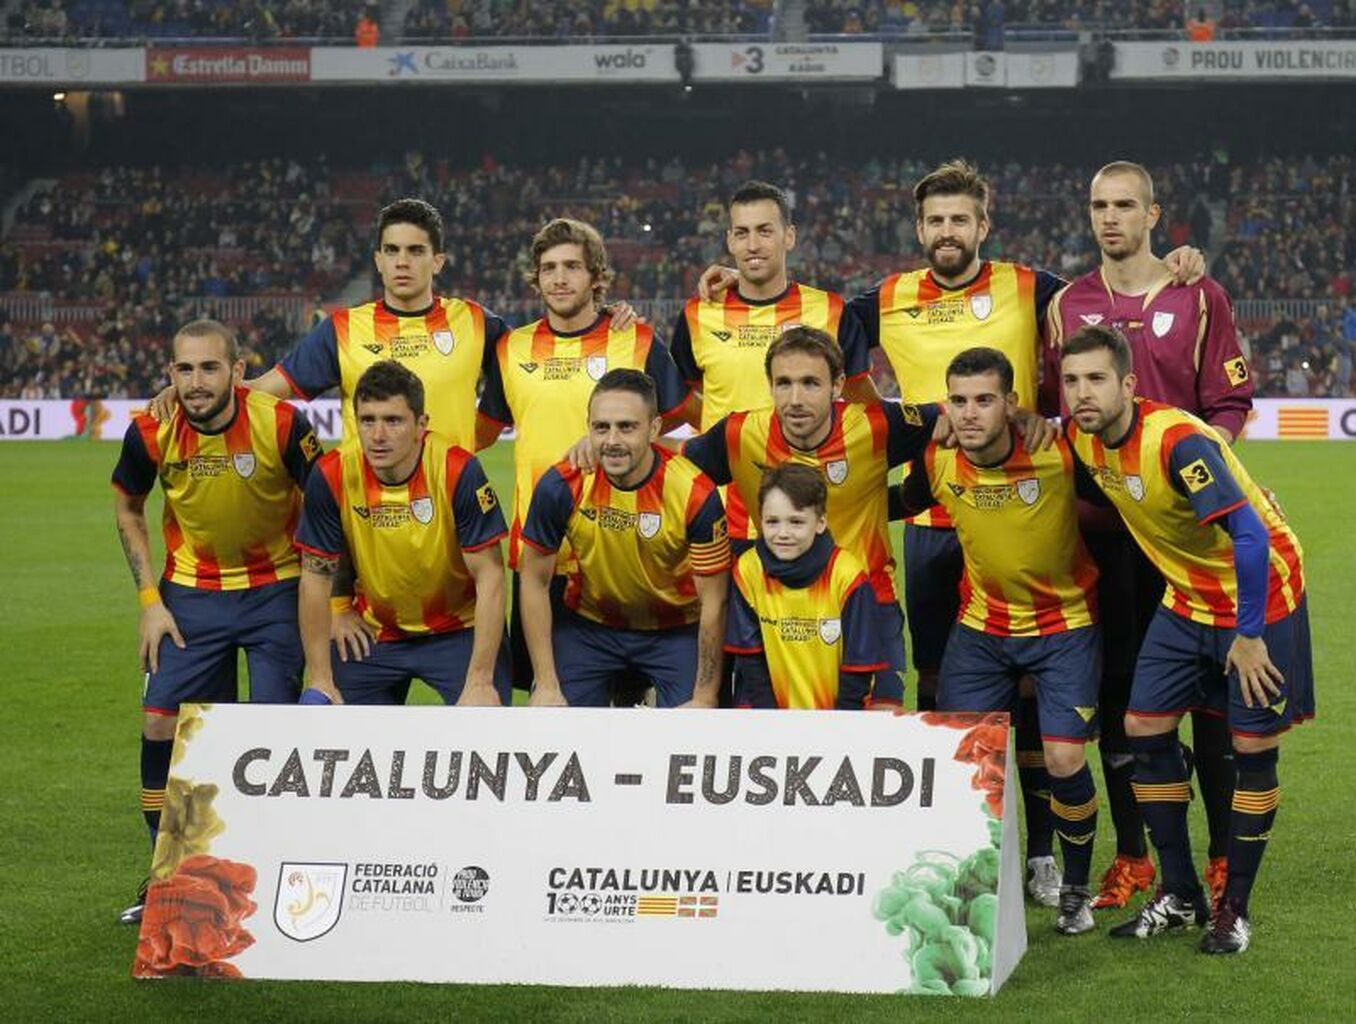 Valladolid stops its players from responding to Catalonia's call